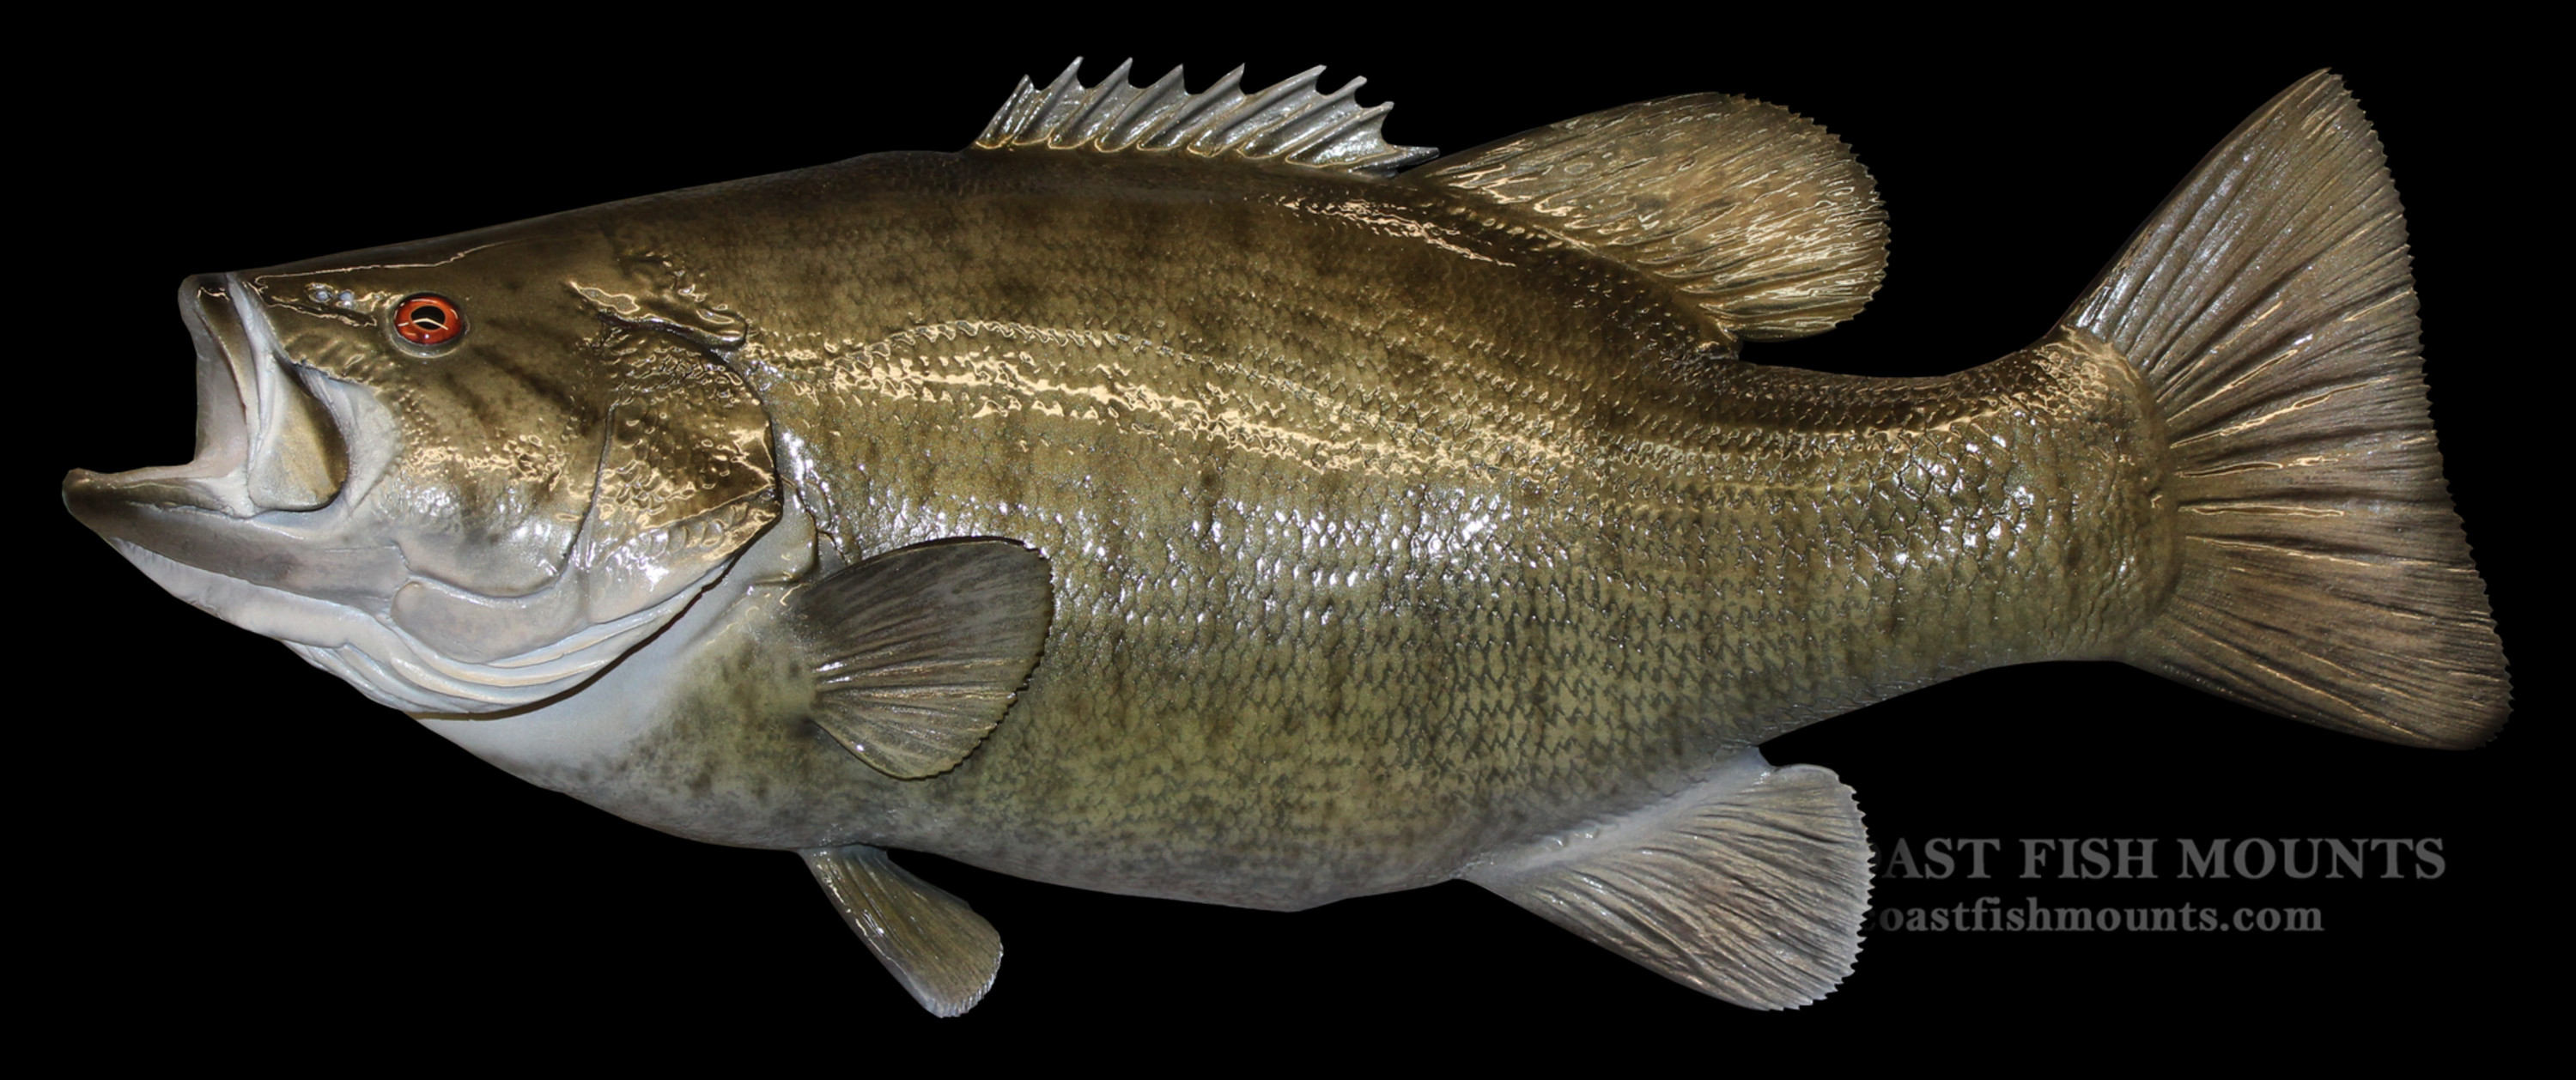 Smallmouth bass fish mount and fish replicas coast to coast for Bass fish pictures